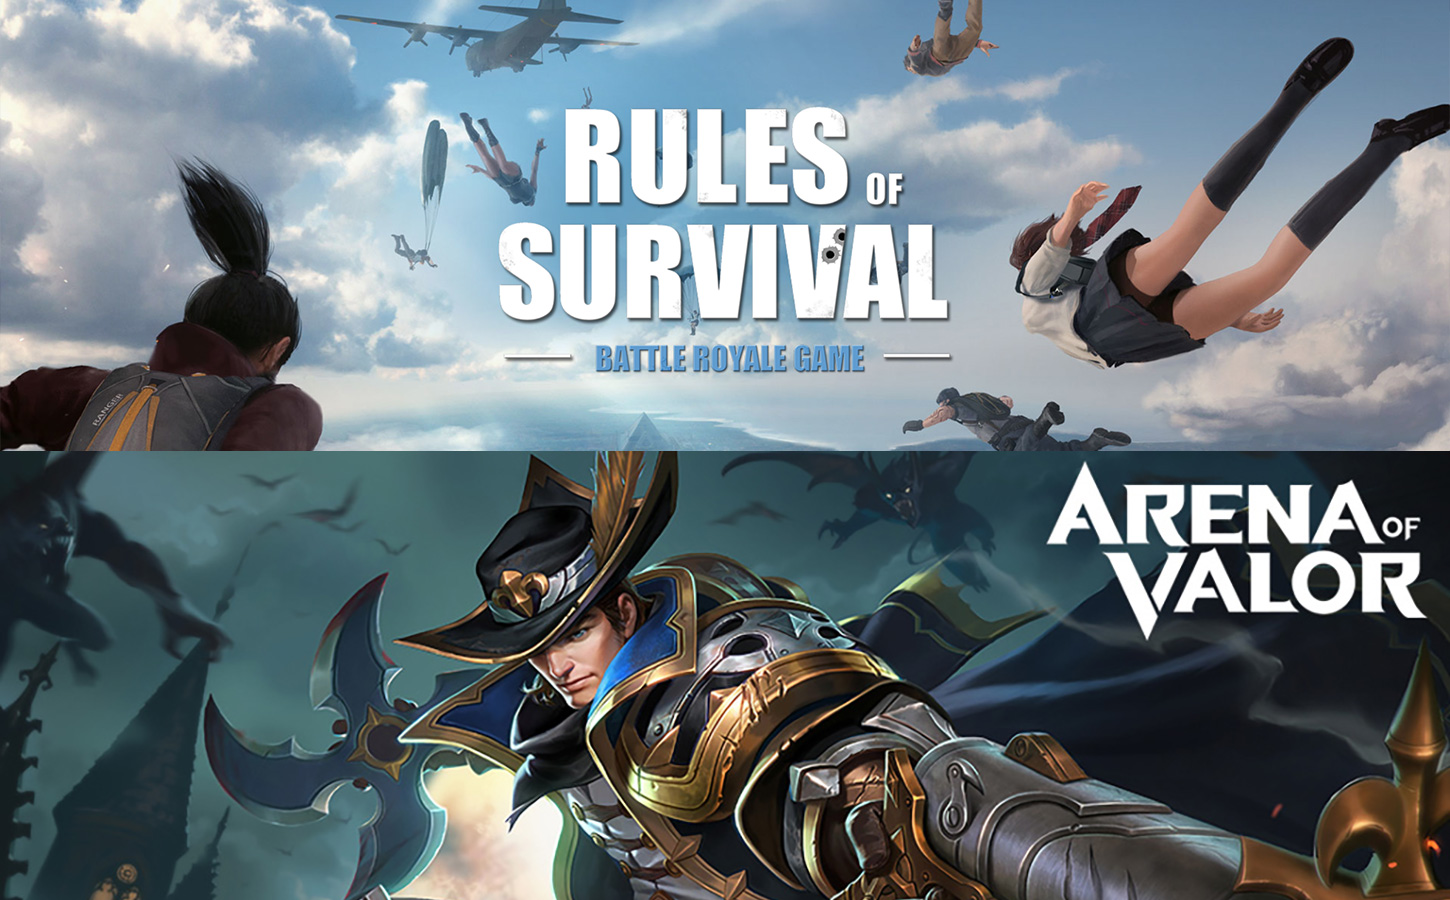 Rules of Survival Surpassed Arena of Valor in First-Month U.S. Revenue Hero Image